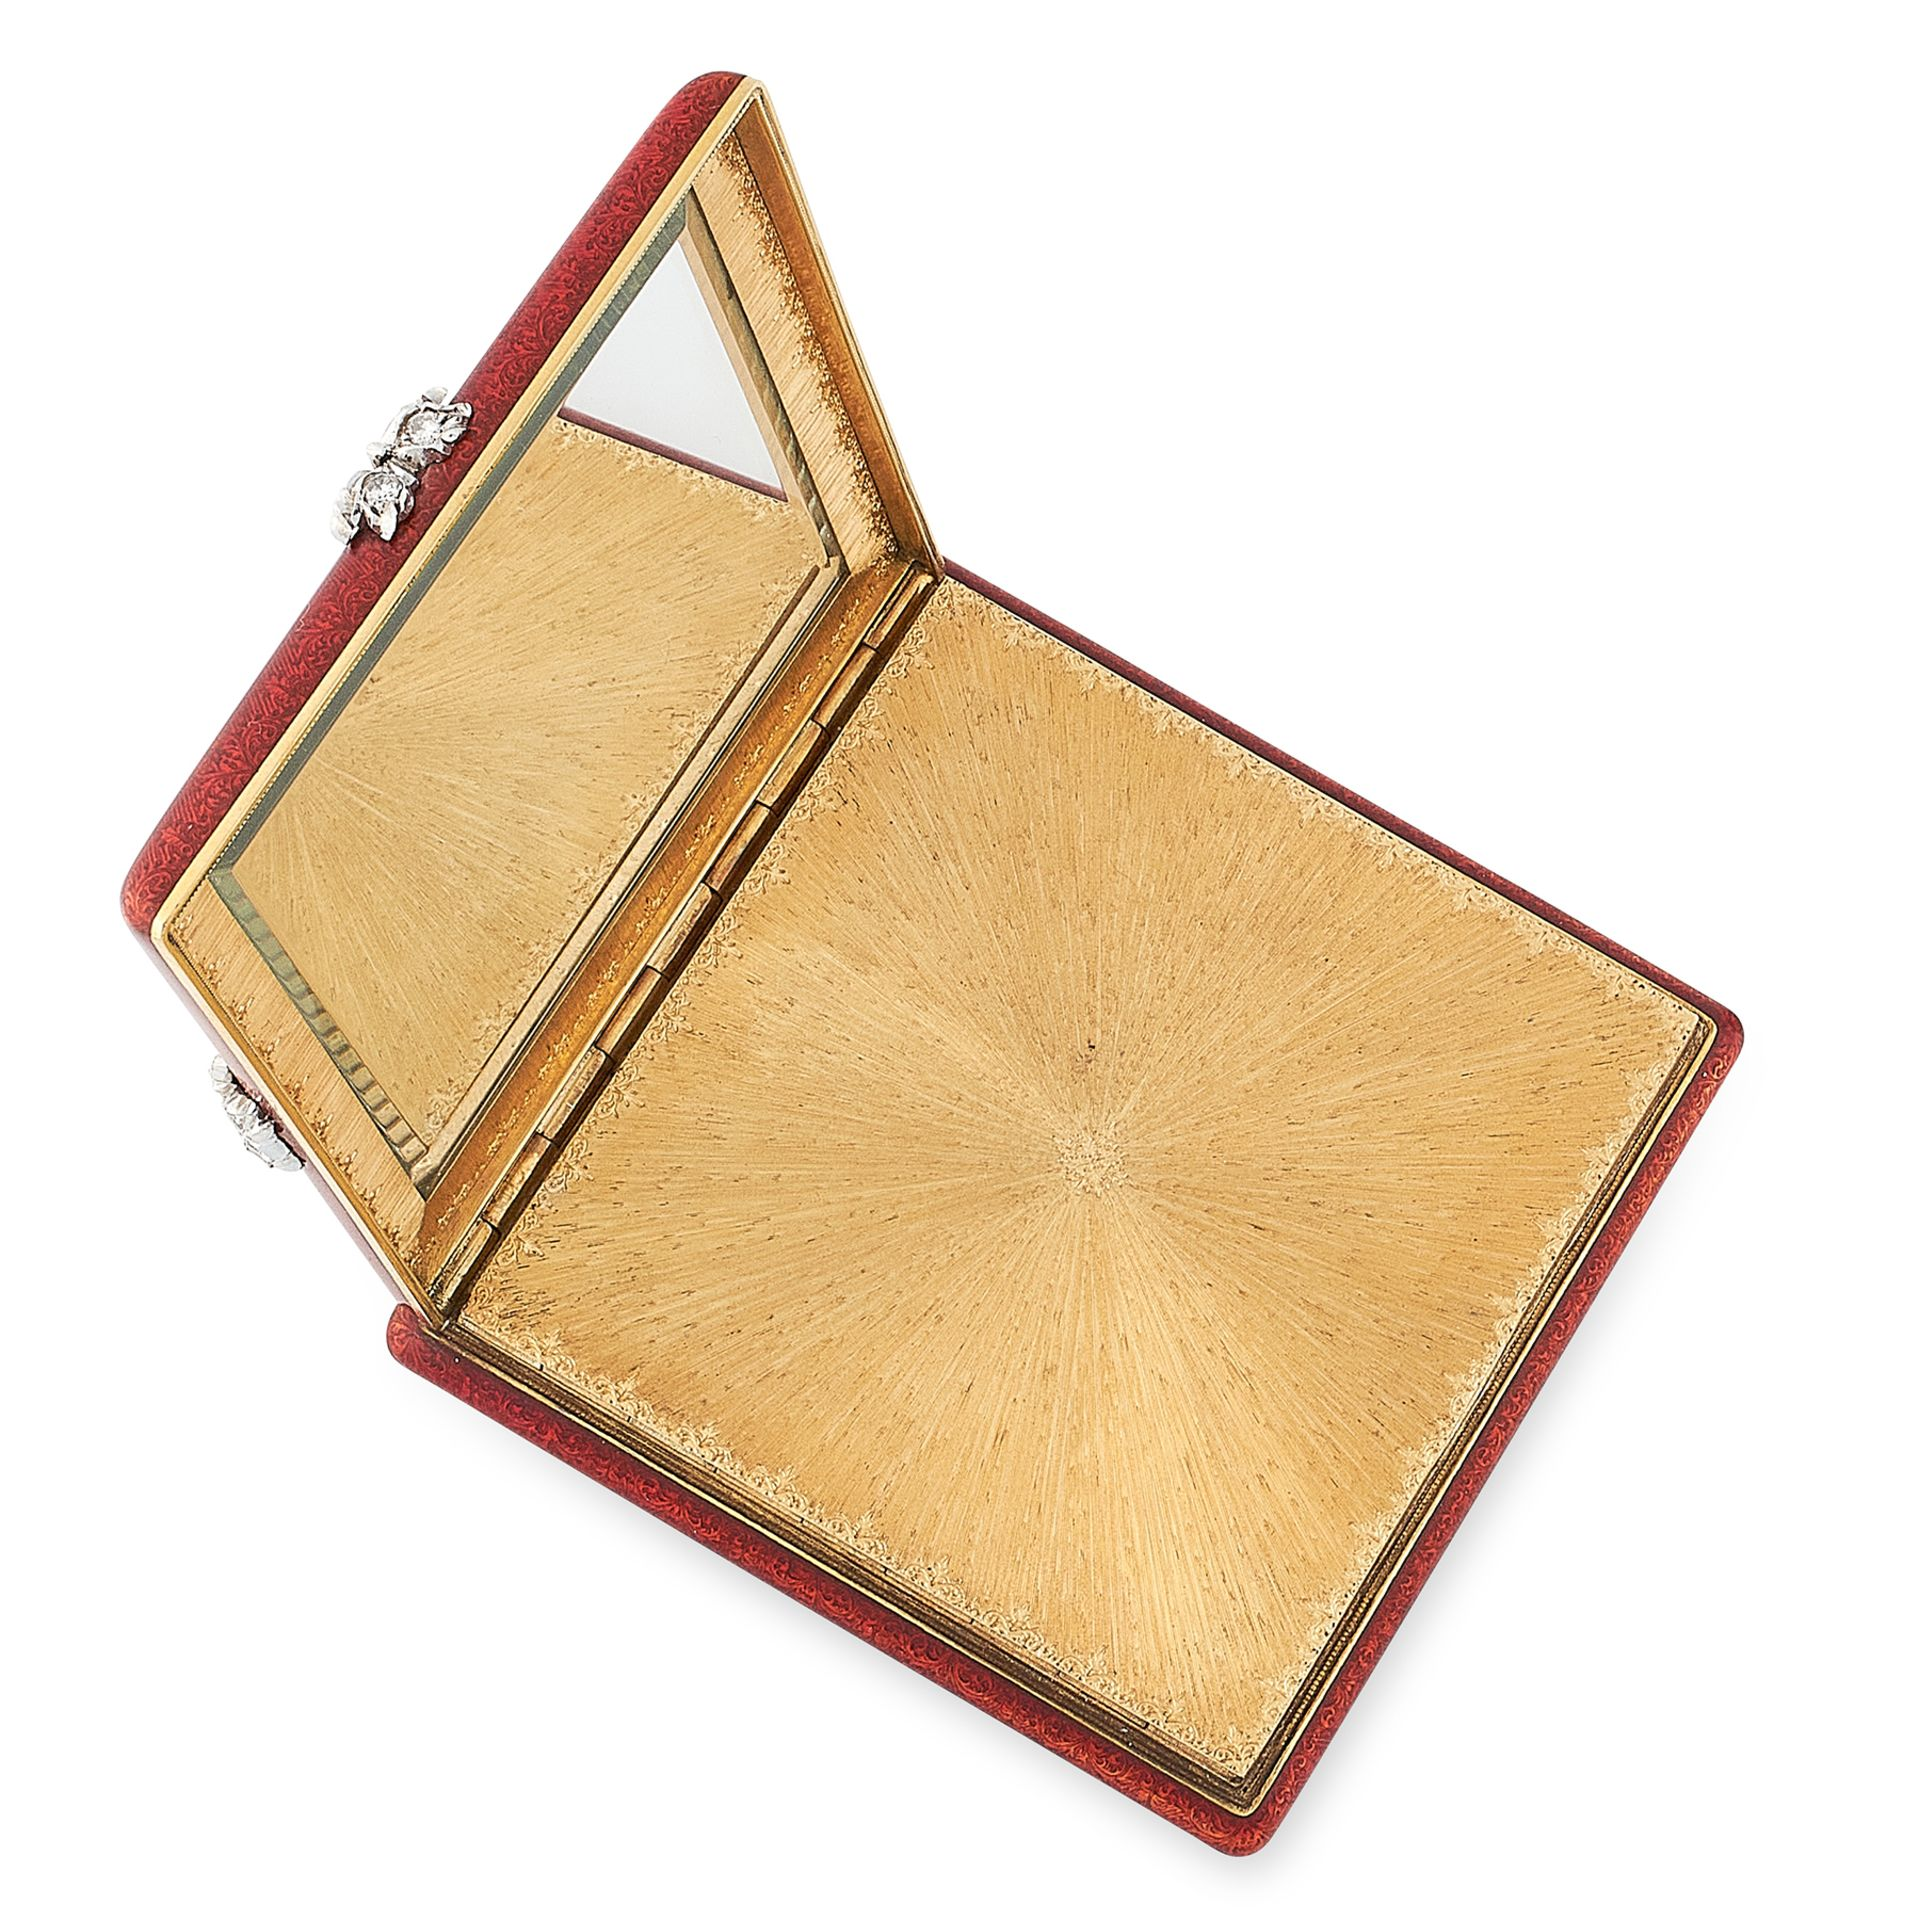 Los 47 - A VINTAGE DIAMOND AND ENAMEL COMPACT, ATTR BUCCELLATI in yellow gold, of squared design, the body